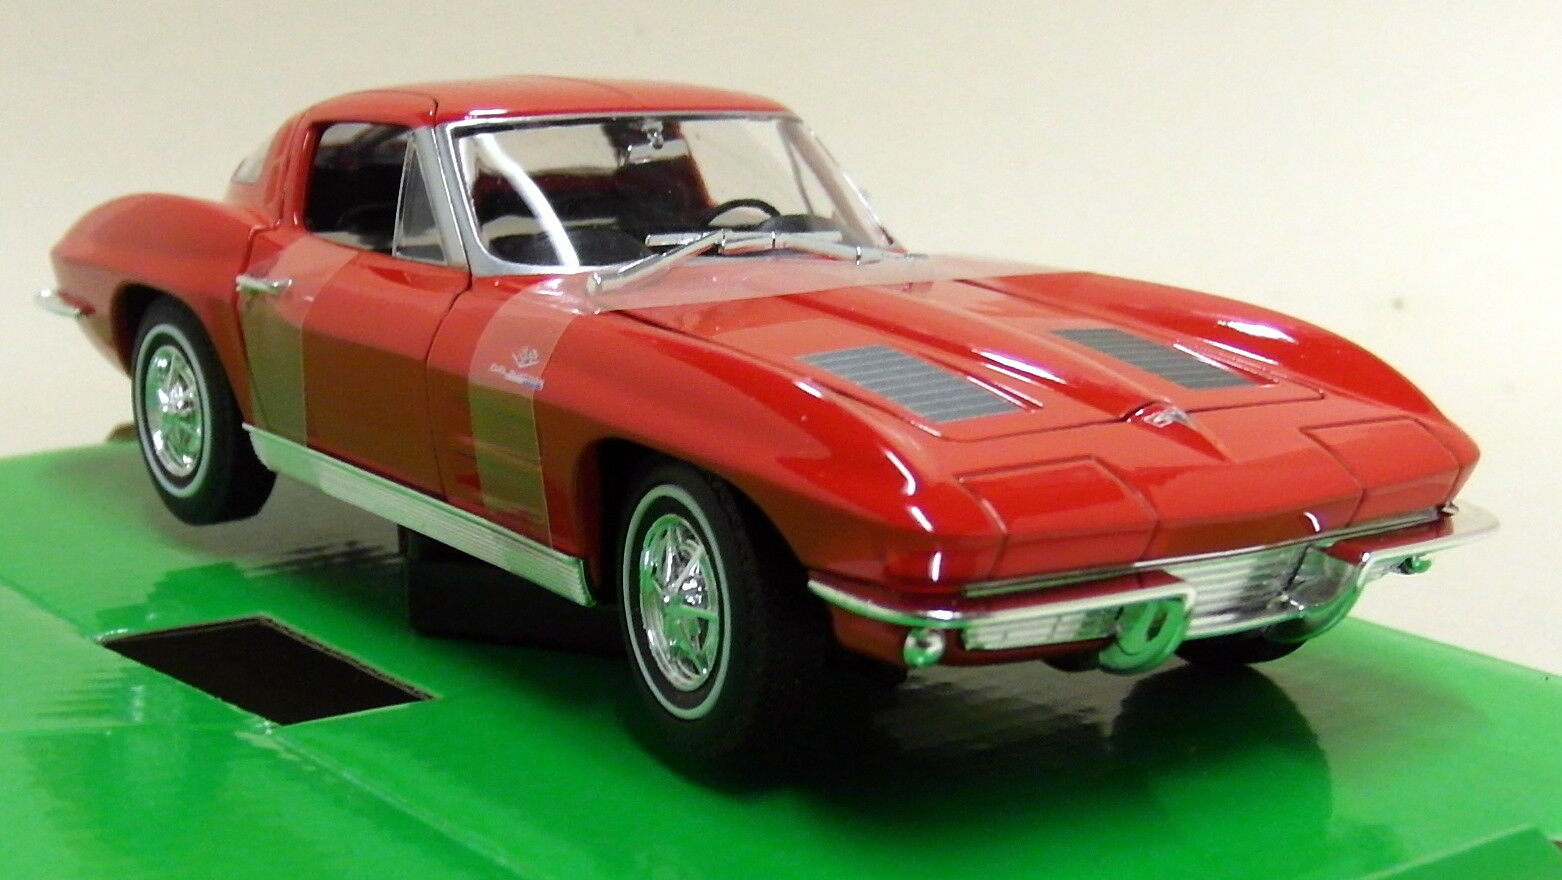 Nex 1 24-27 Scale 1963 Chevrolet Corvette C2 Coupe Red Red Red Diecast Model Car 1ed3ff